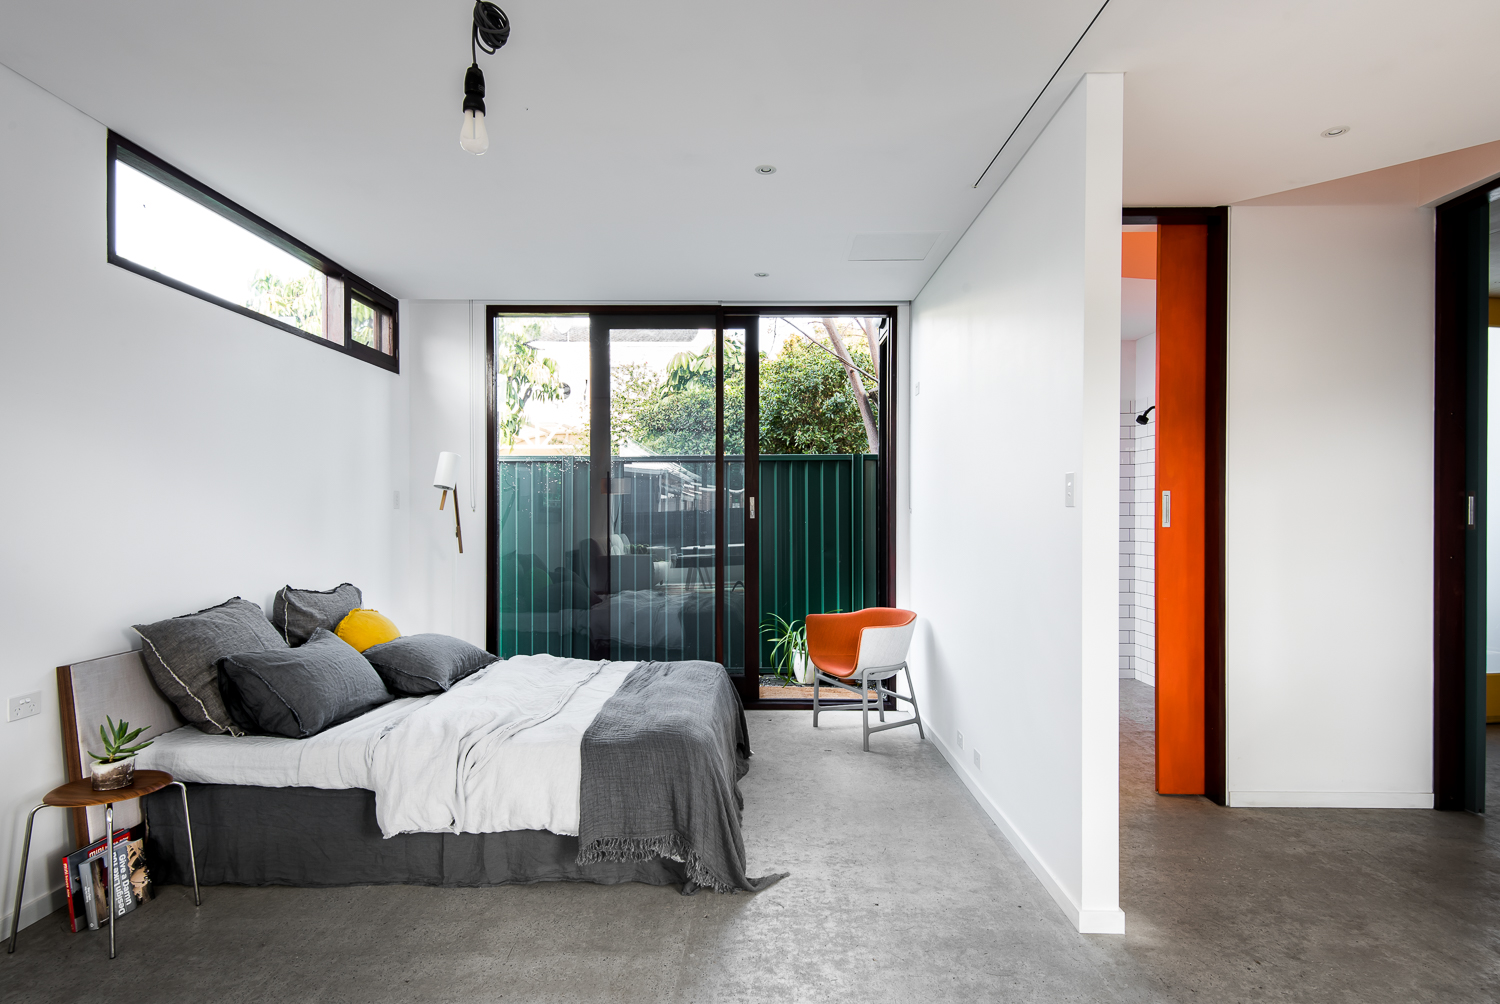 House with a studio House with a studio for the artist-illustrator the exploding shed house david weir architects 206aec2a